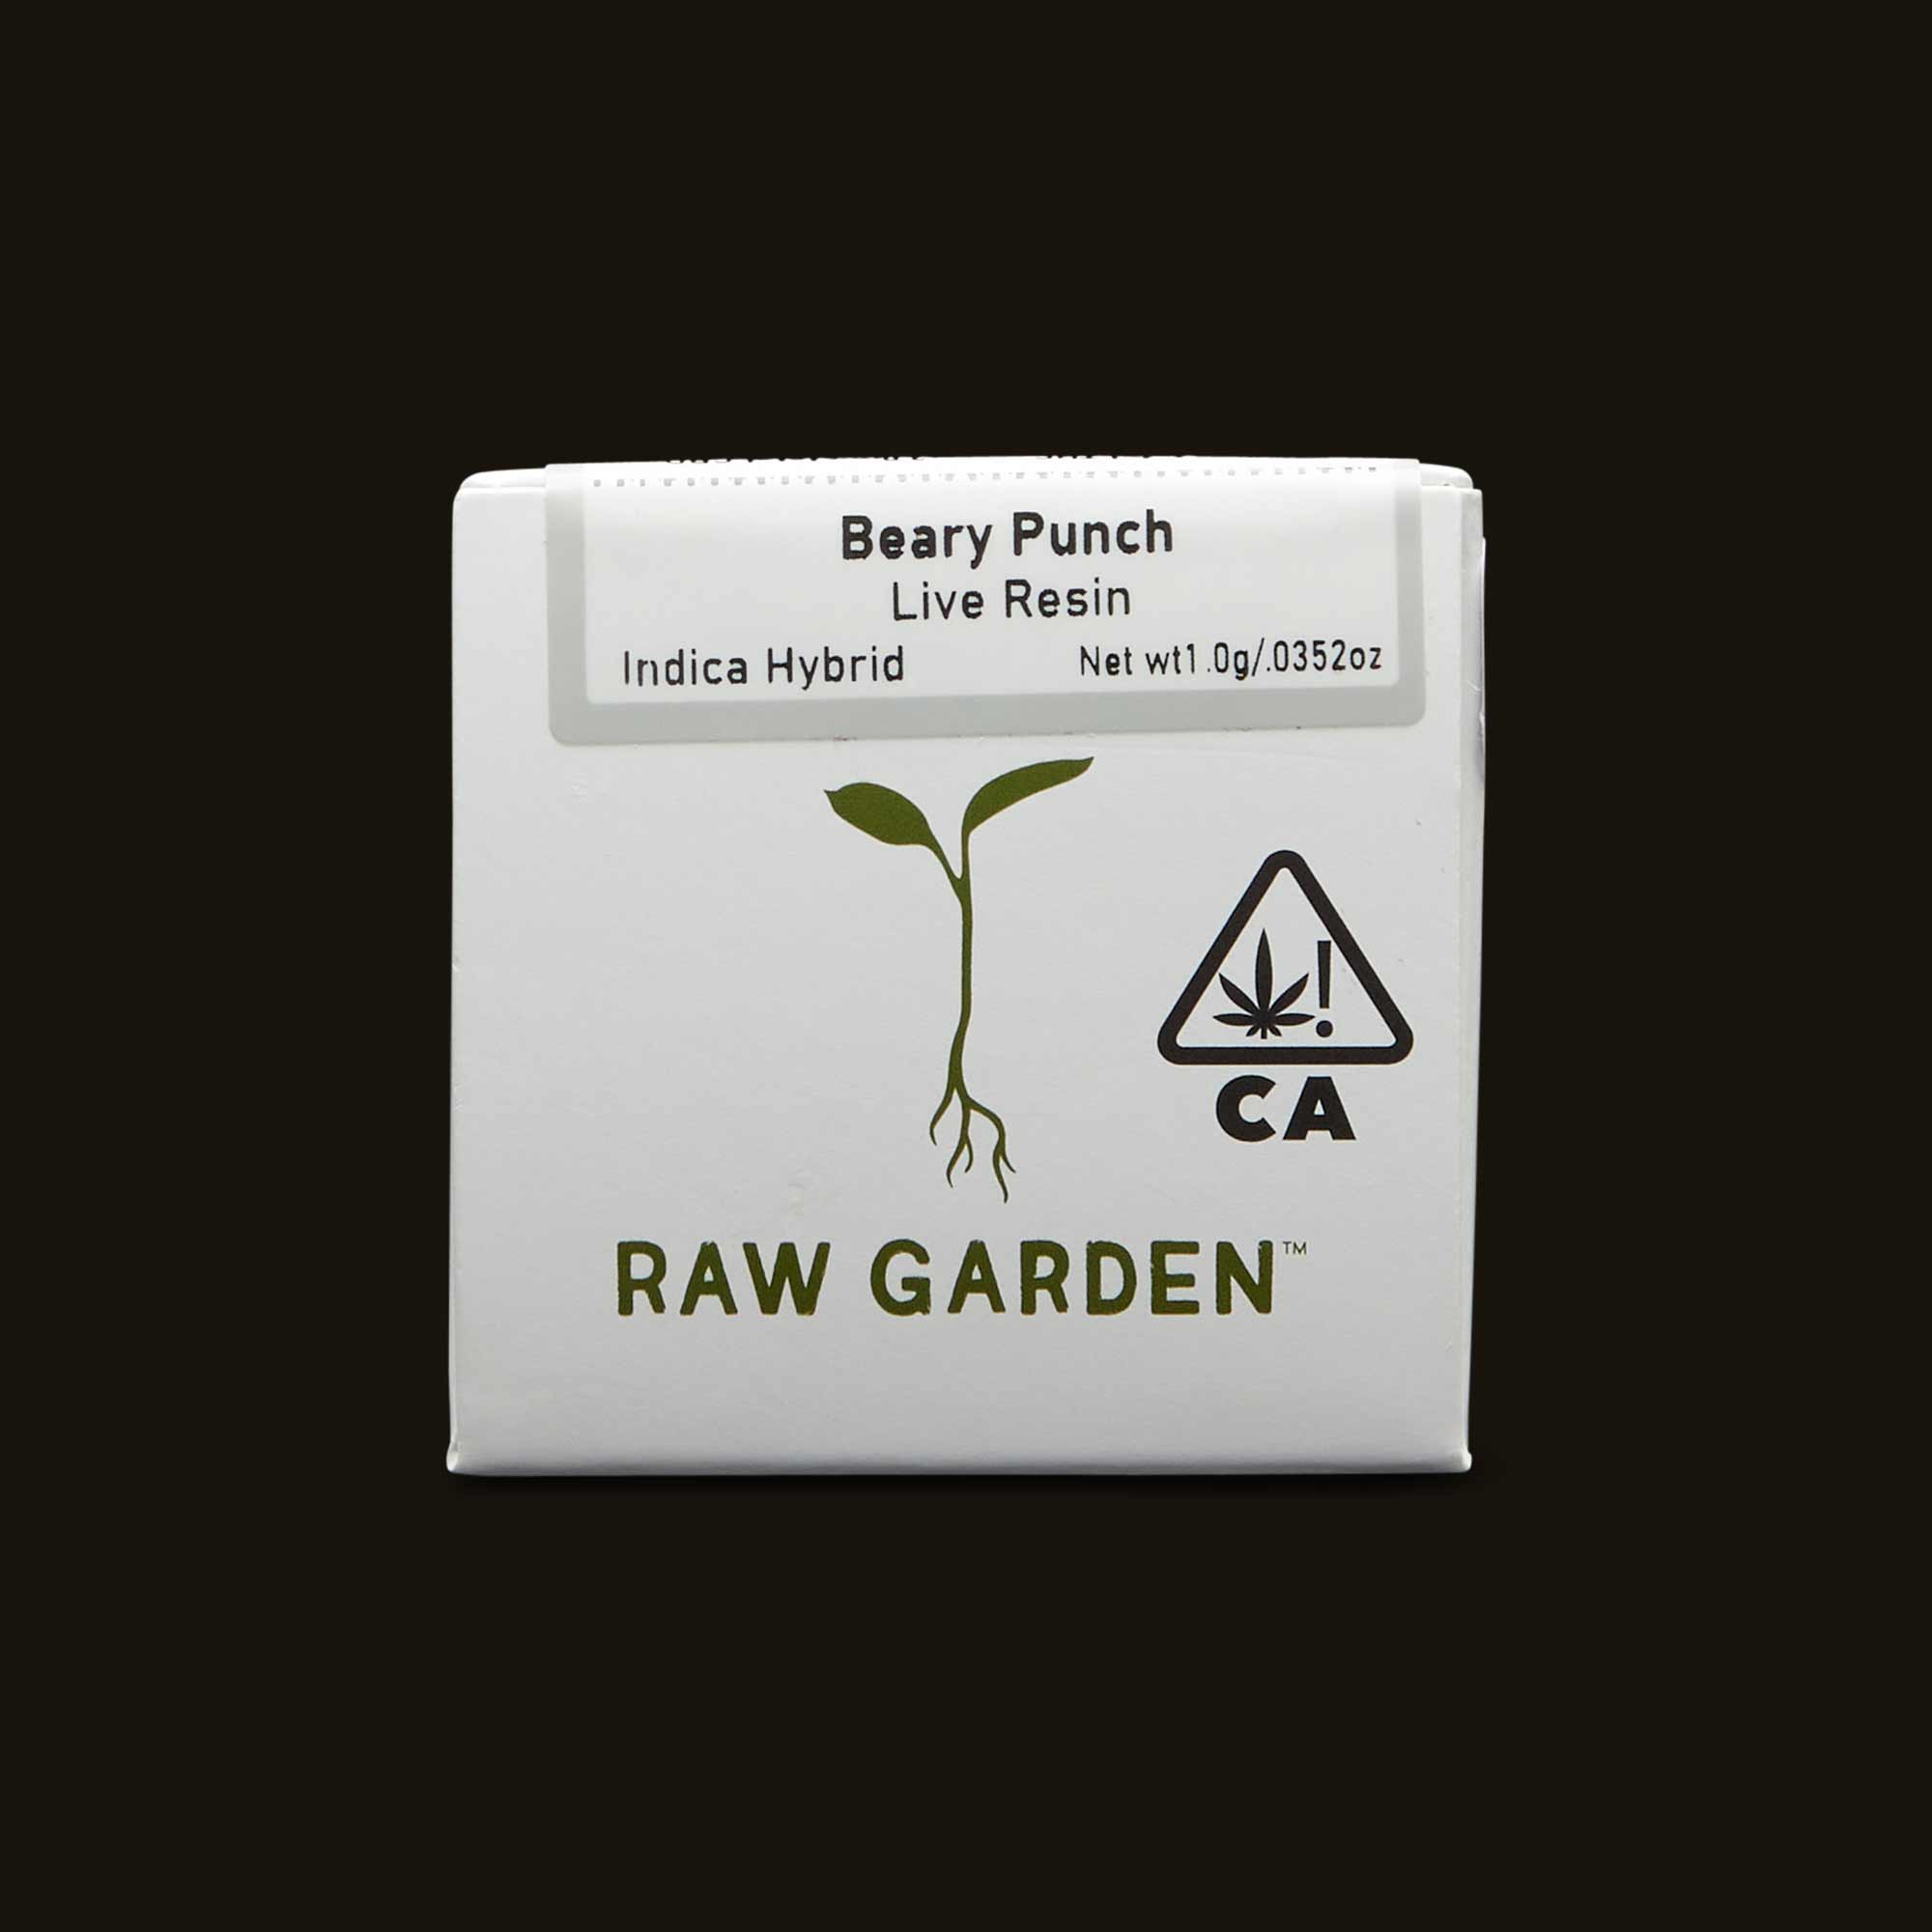 Beary Punch Live Resin by Raw Garden unopened box